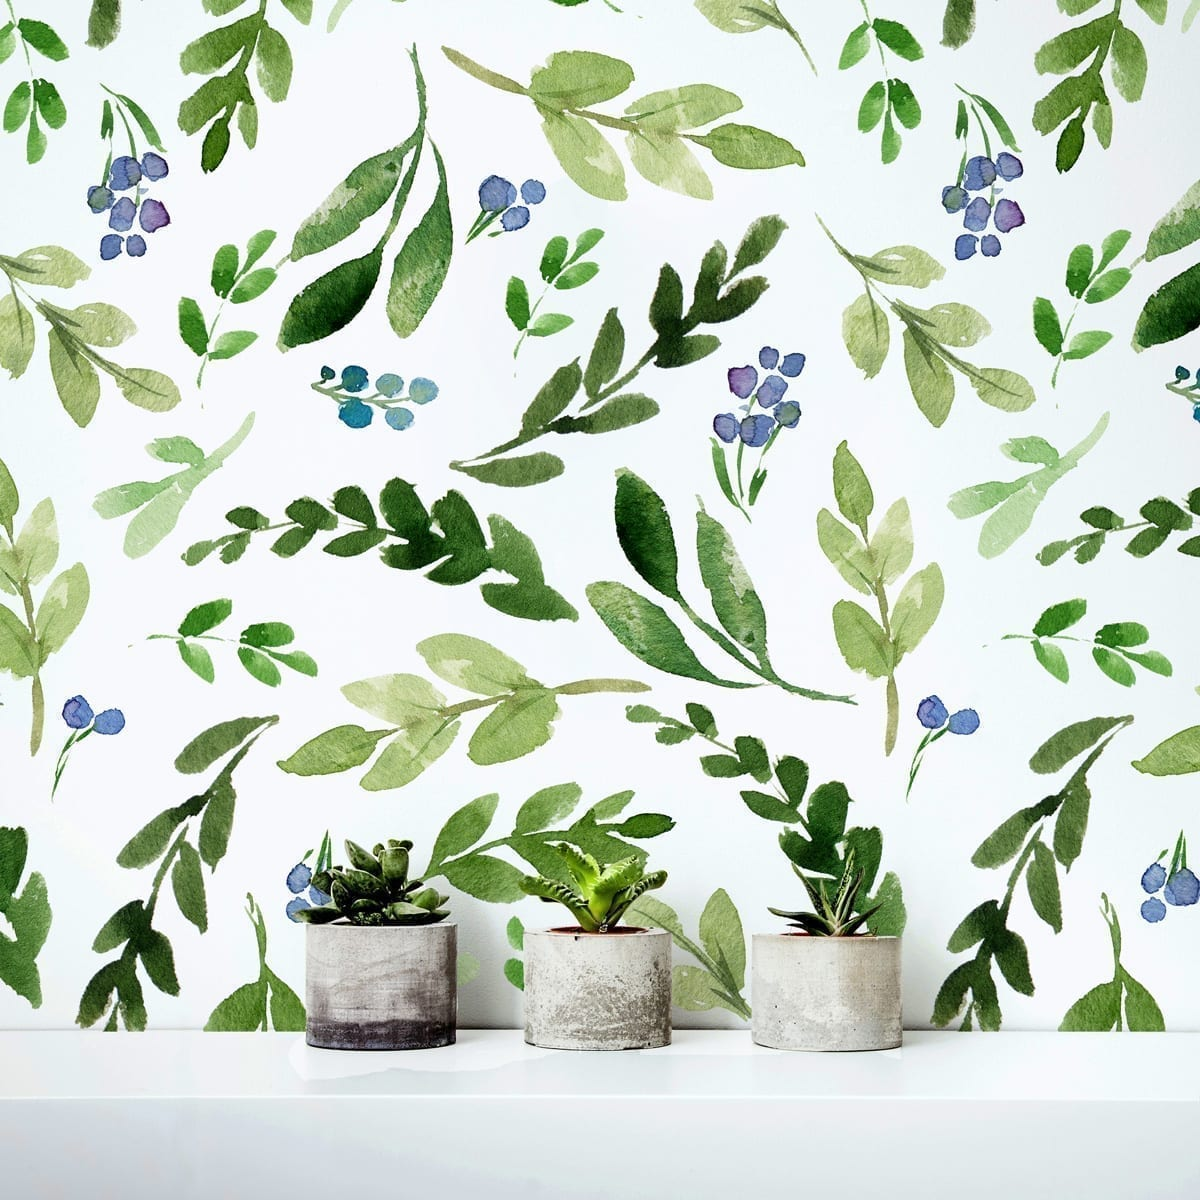 Wall Art Murals Decals Stickers Watercolor Green Leaves Repositionable Wallpaper